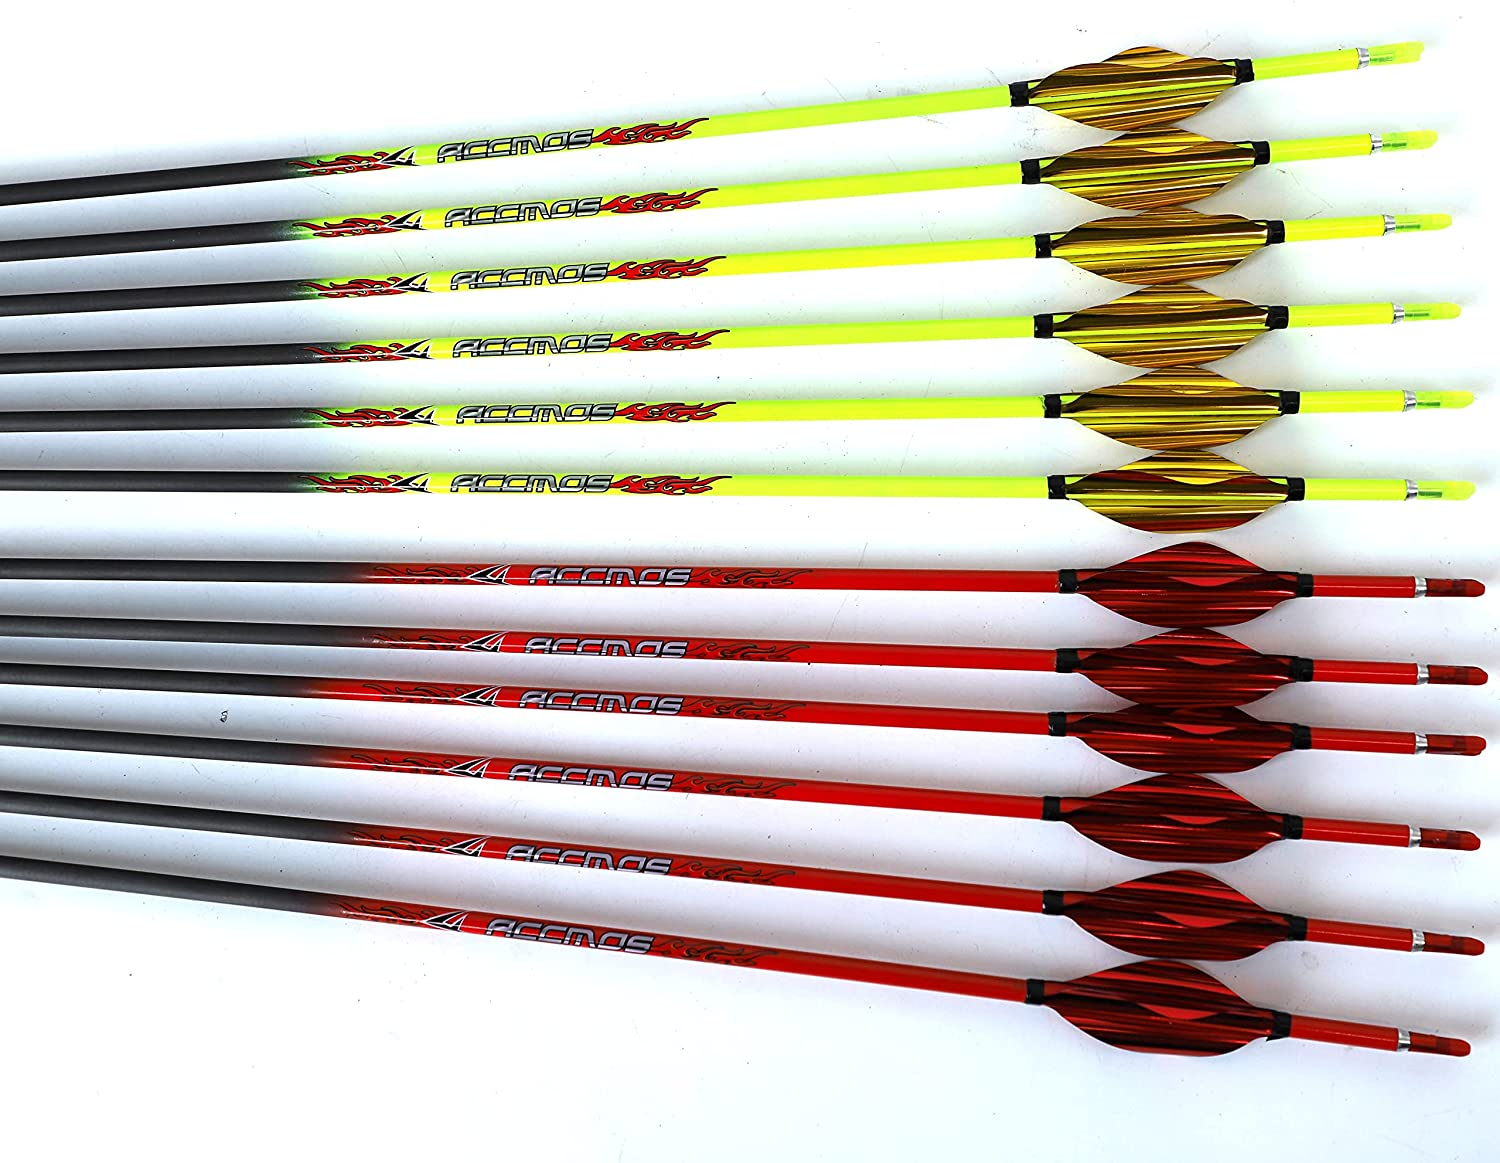 Max 88% OFF 12pc Custom Length Carbon Arrows for Lb Around 25 Bow Super beauty product restock quality top Compound I